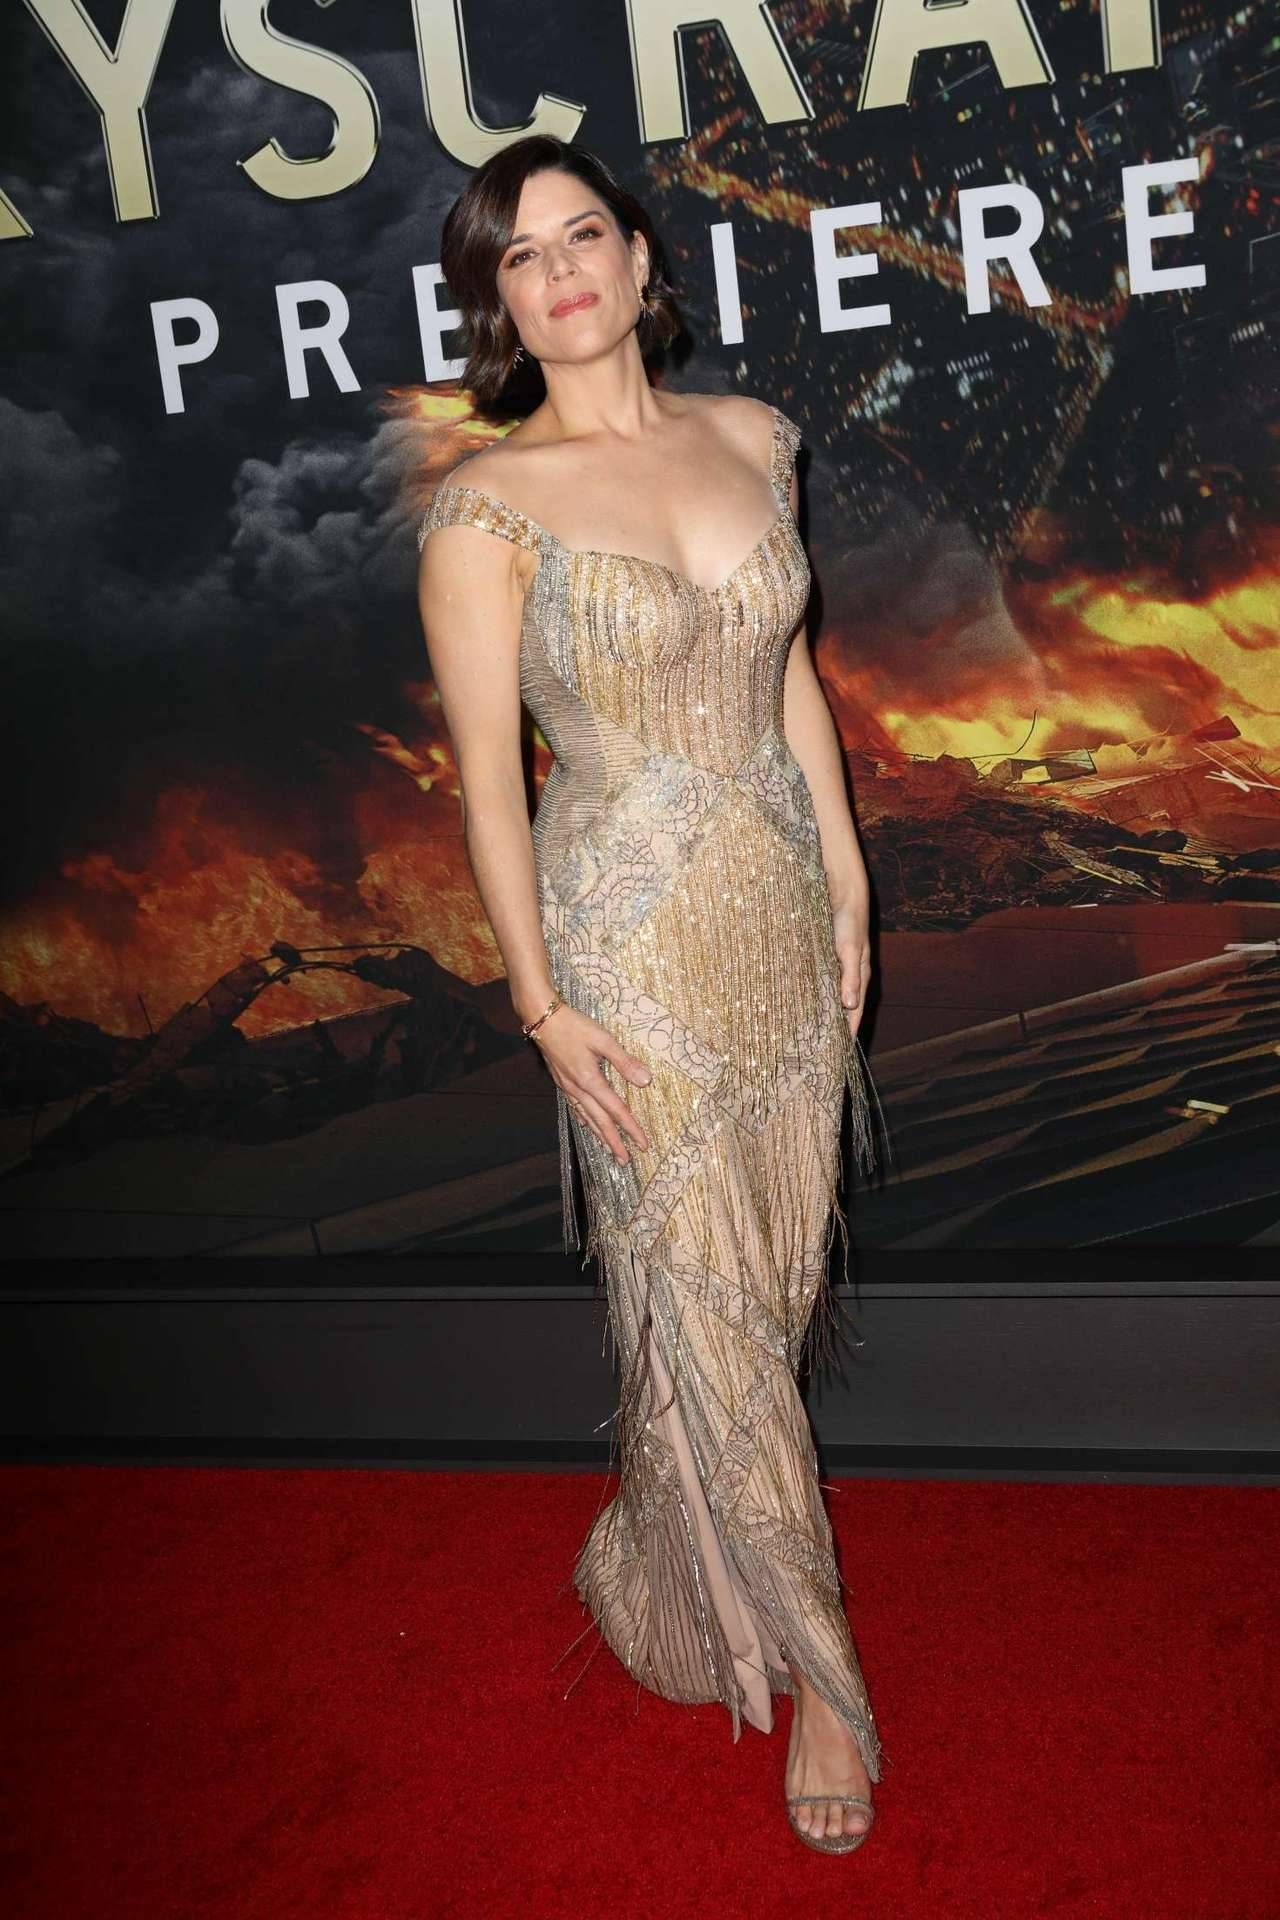 Actress Neve Campbell attends the Skyscraper New York